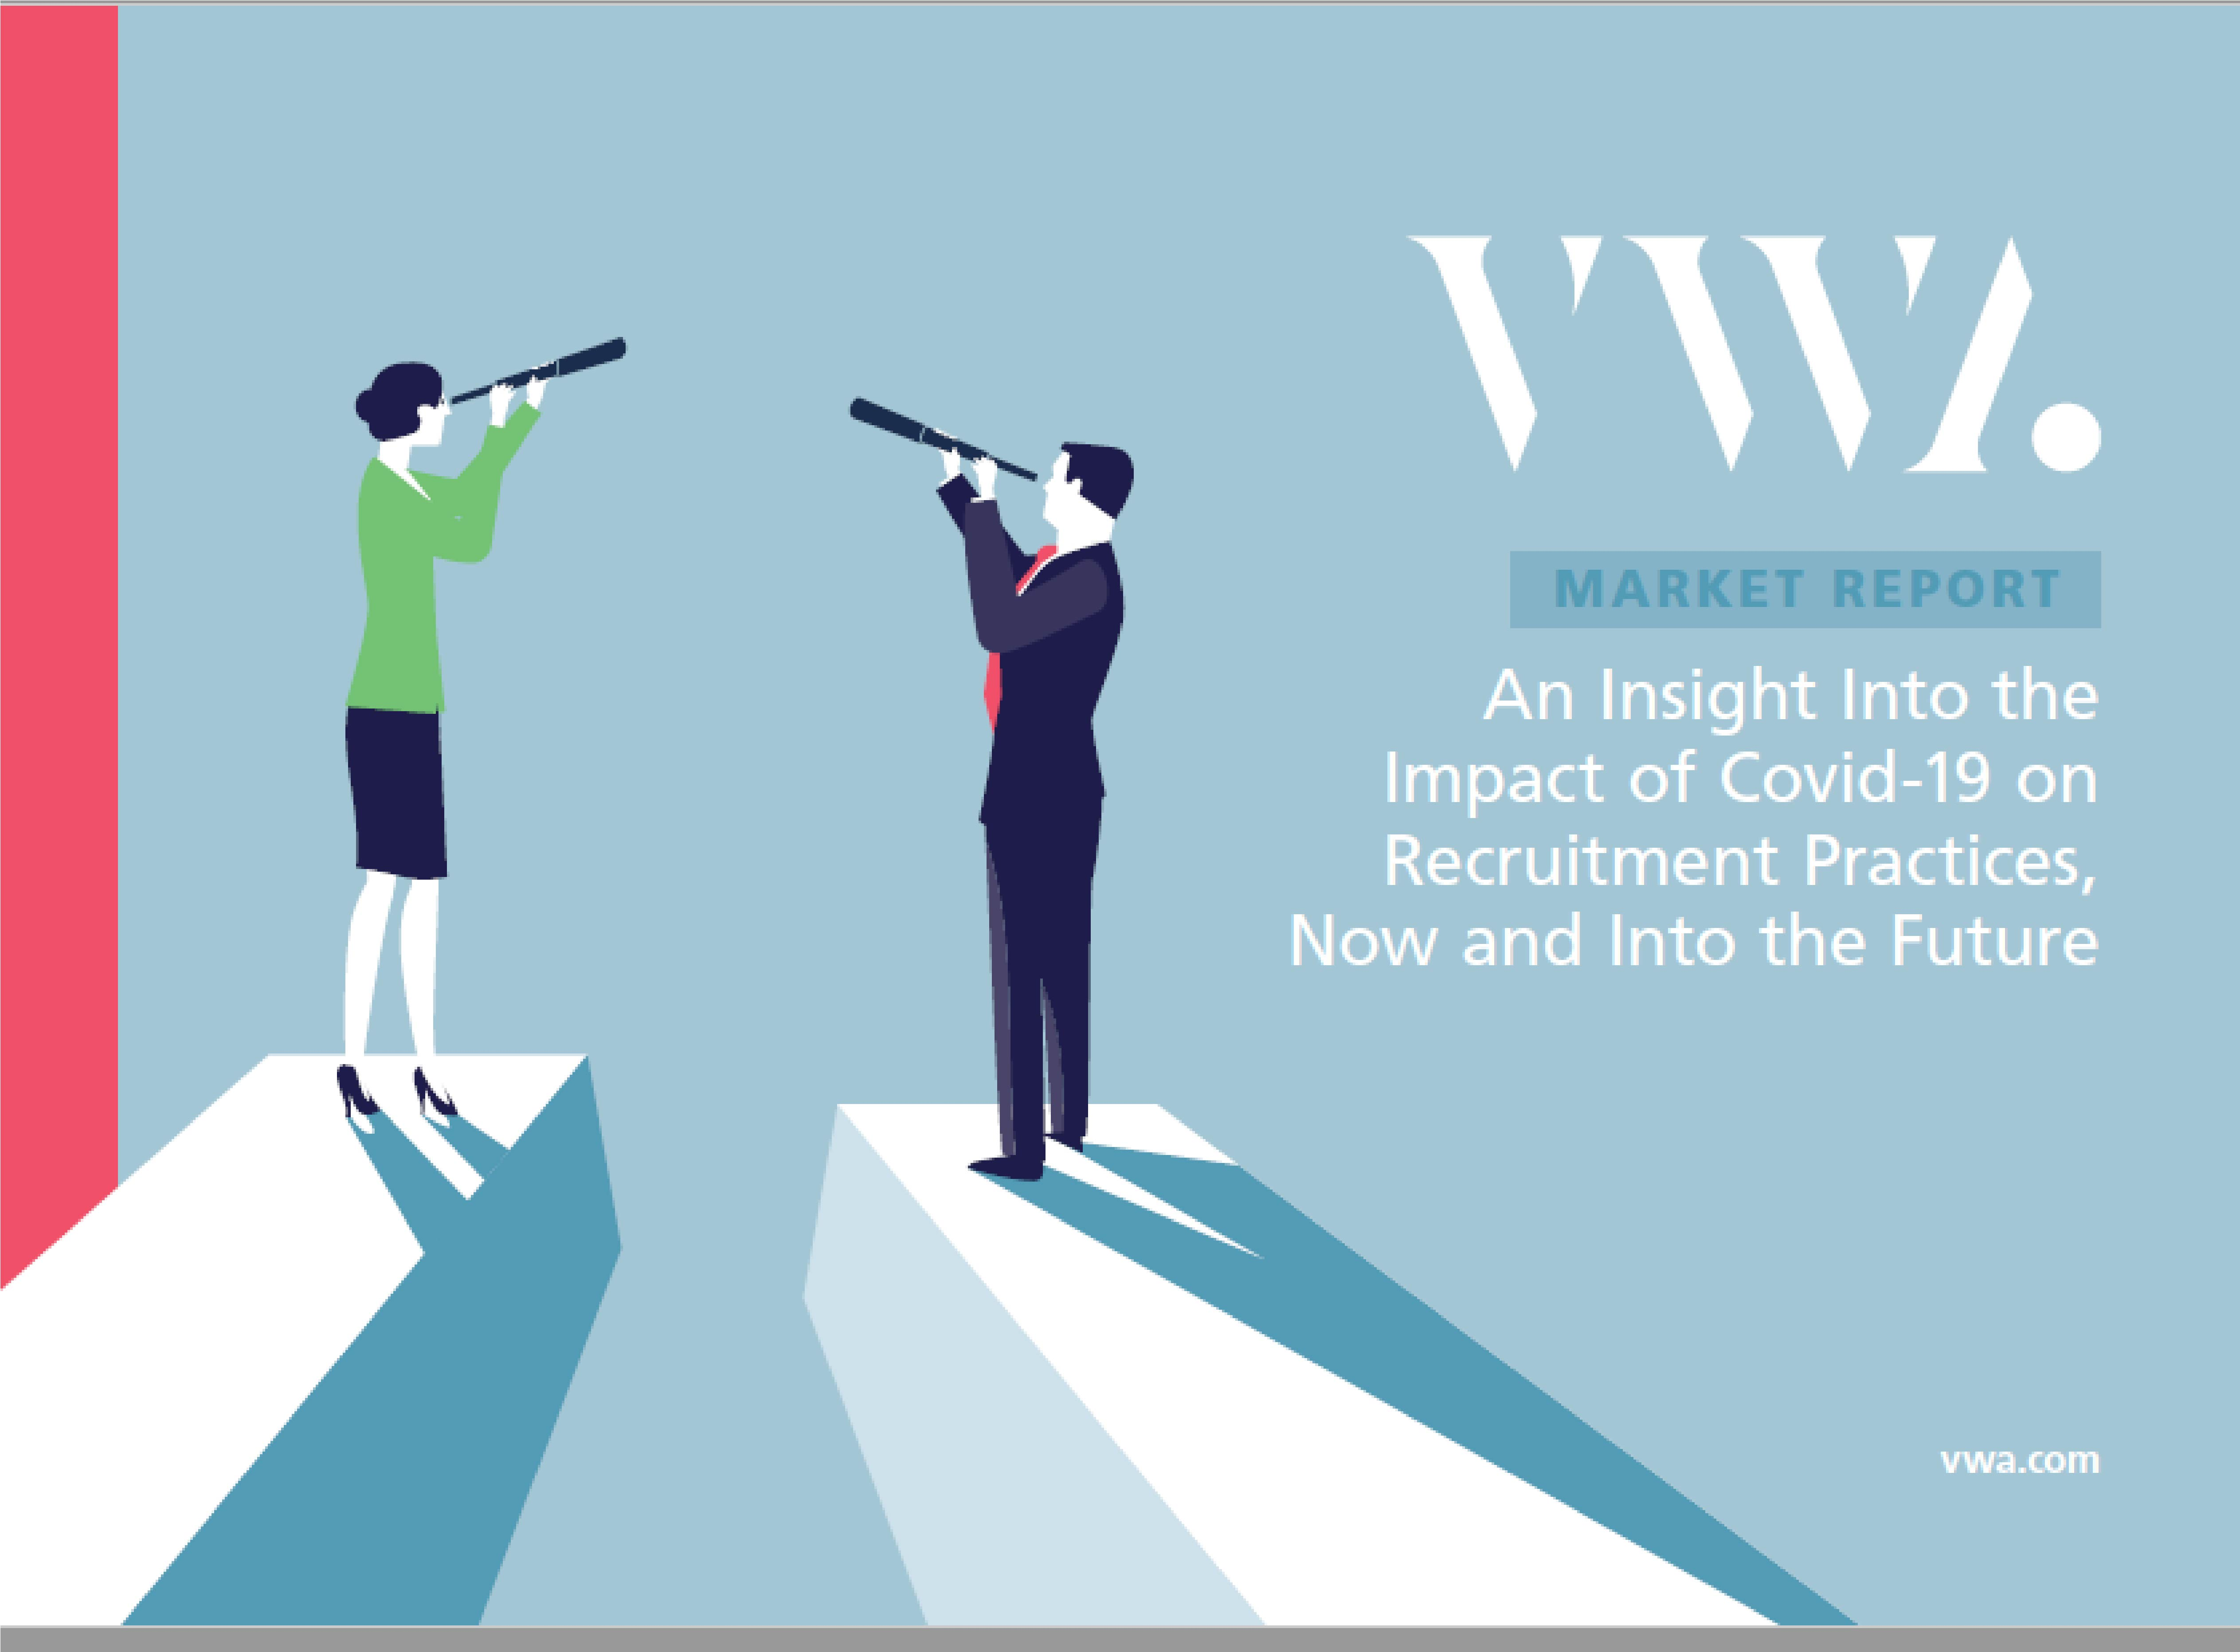 VWA Market Report: An Insight into the Impact of Covid-19 on Recruitment Practices, Now and Into the Future